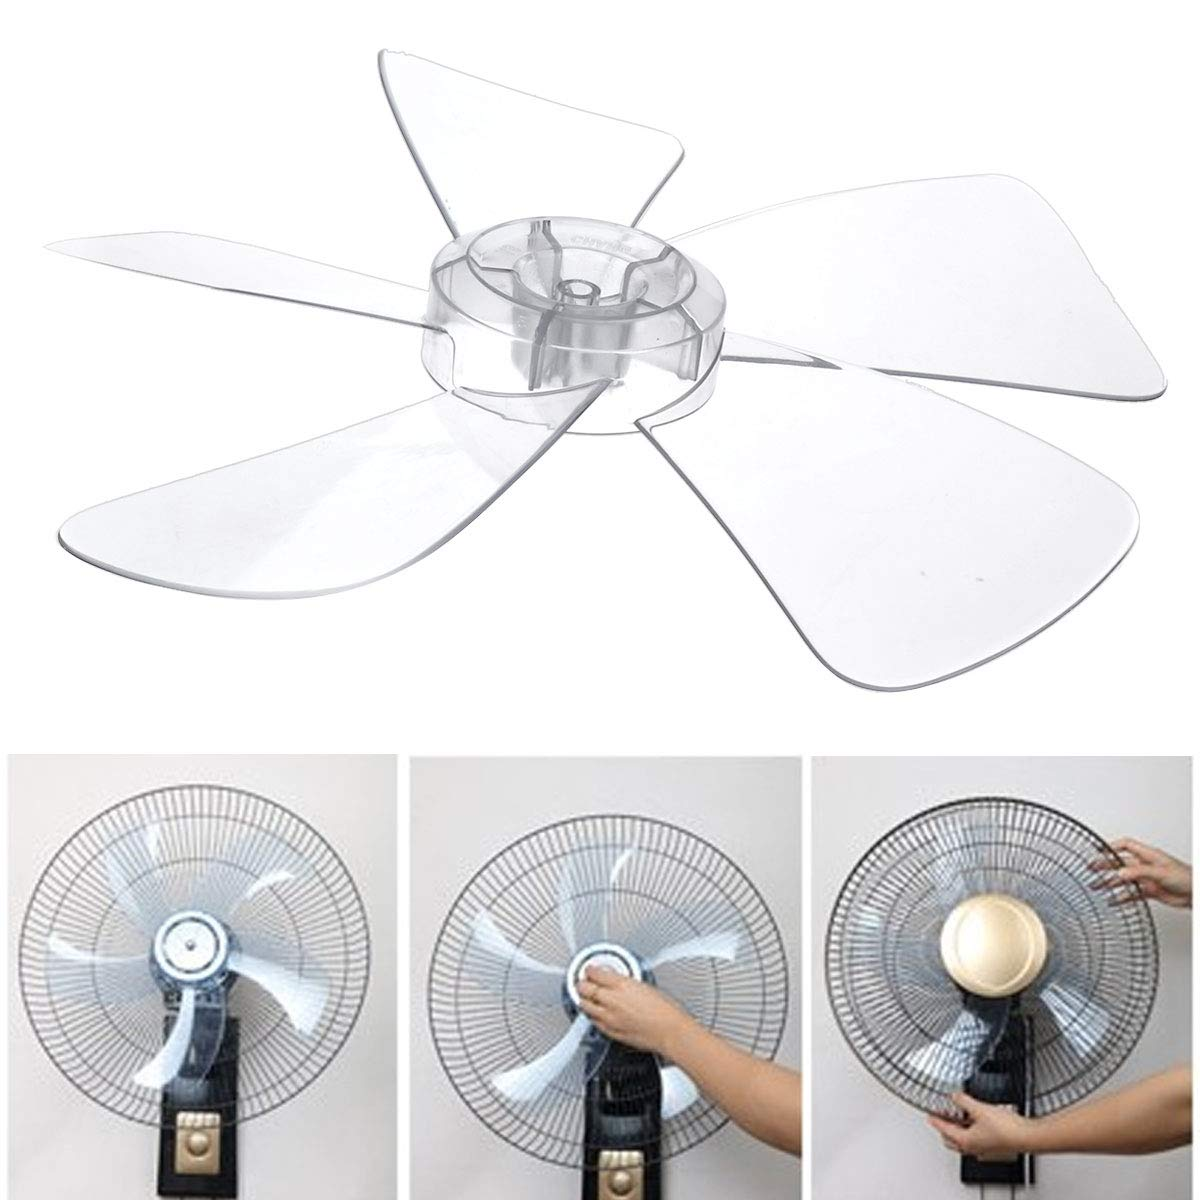 CHICTRY 16 Inch Fan Blade 5 Leaves Plastic White Fan Blade Replacement for Household Standing Pedestal Fan Table Fanner General Accessories Clear One Size